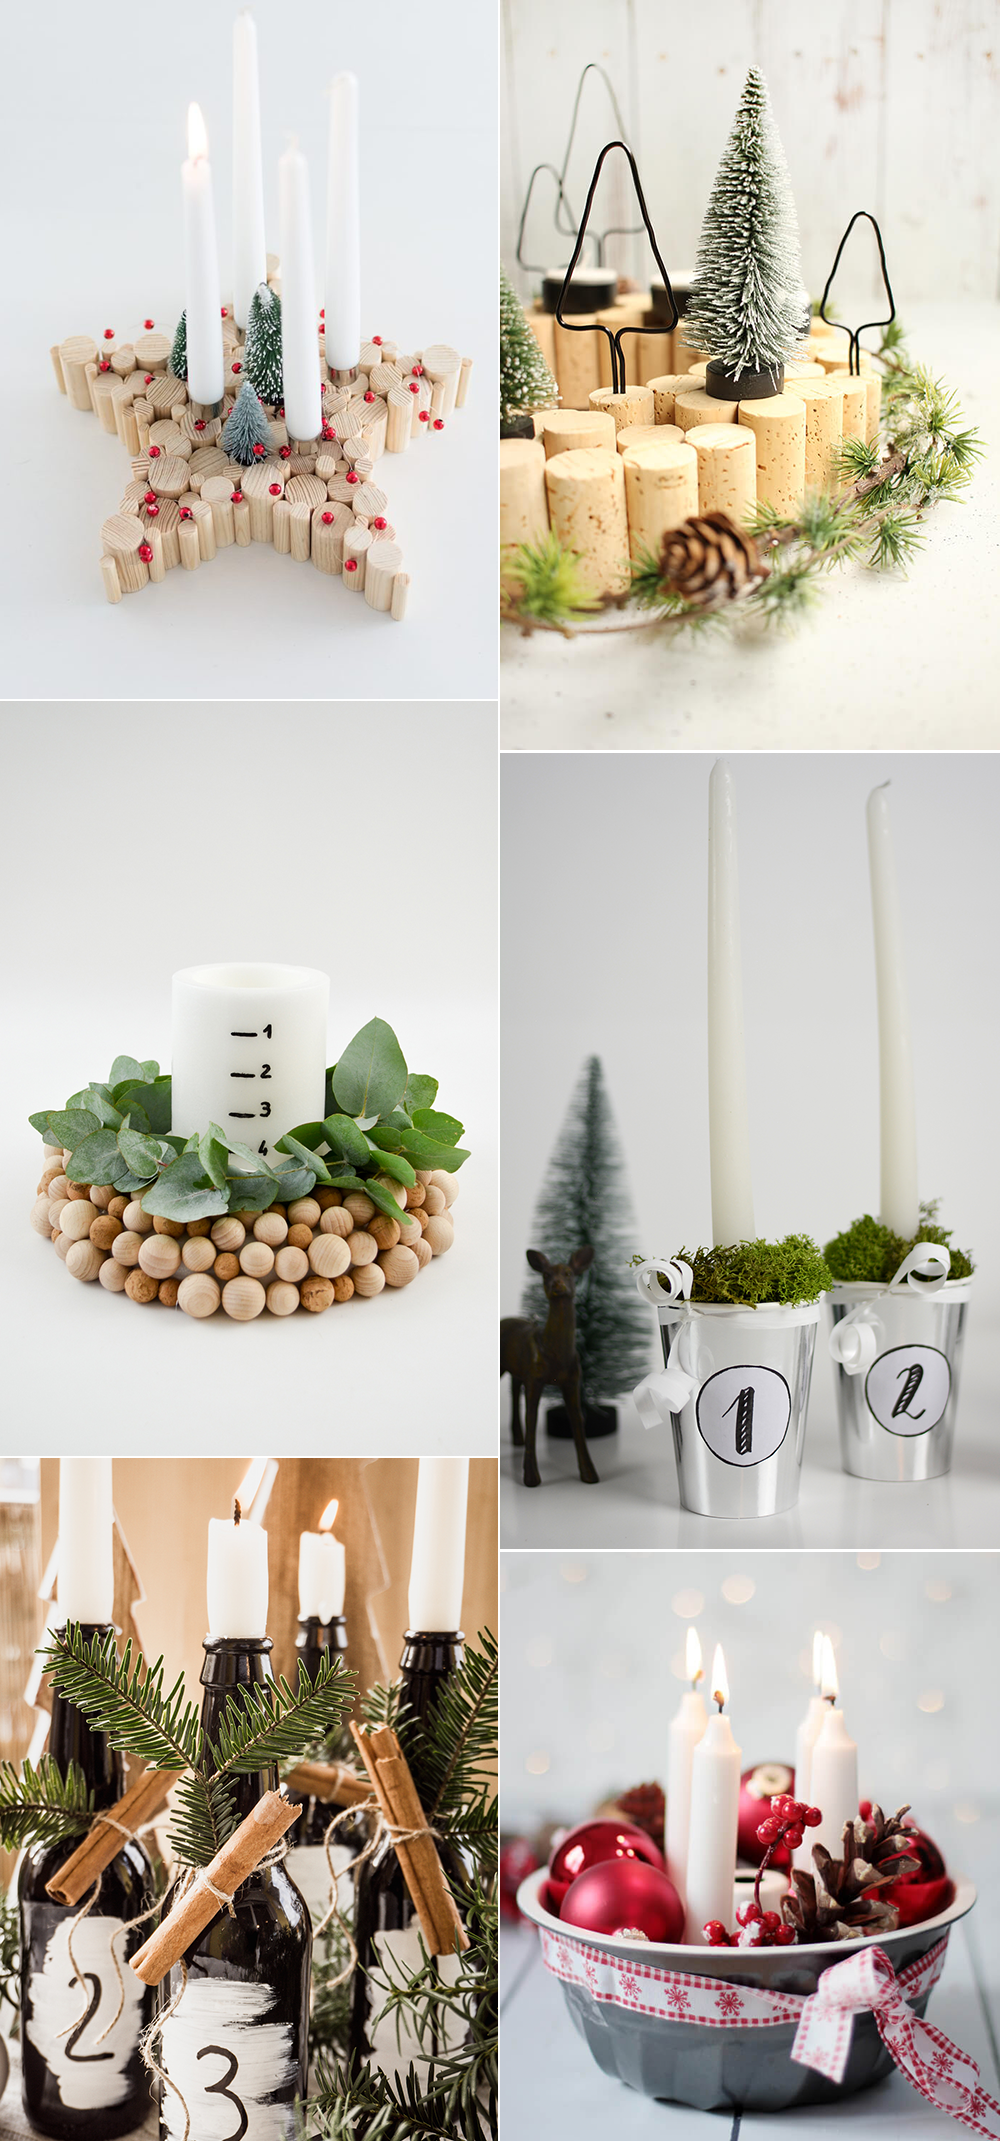 Adventskränze: DIY-Inspirationen | we love handmade